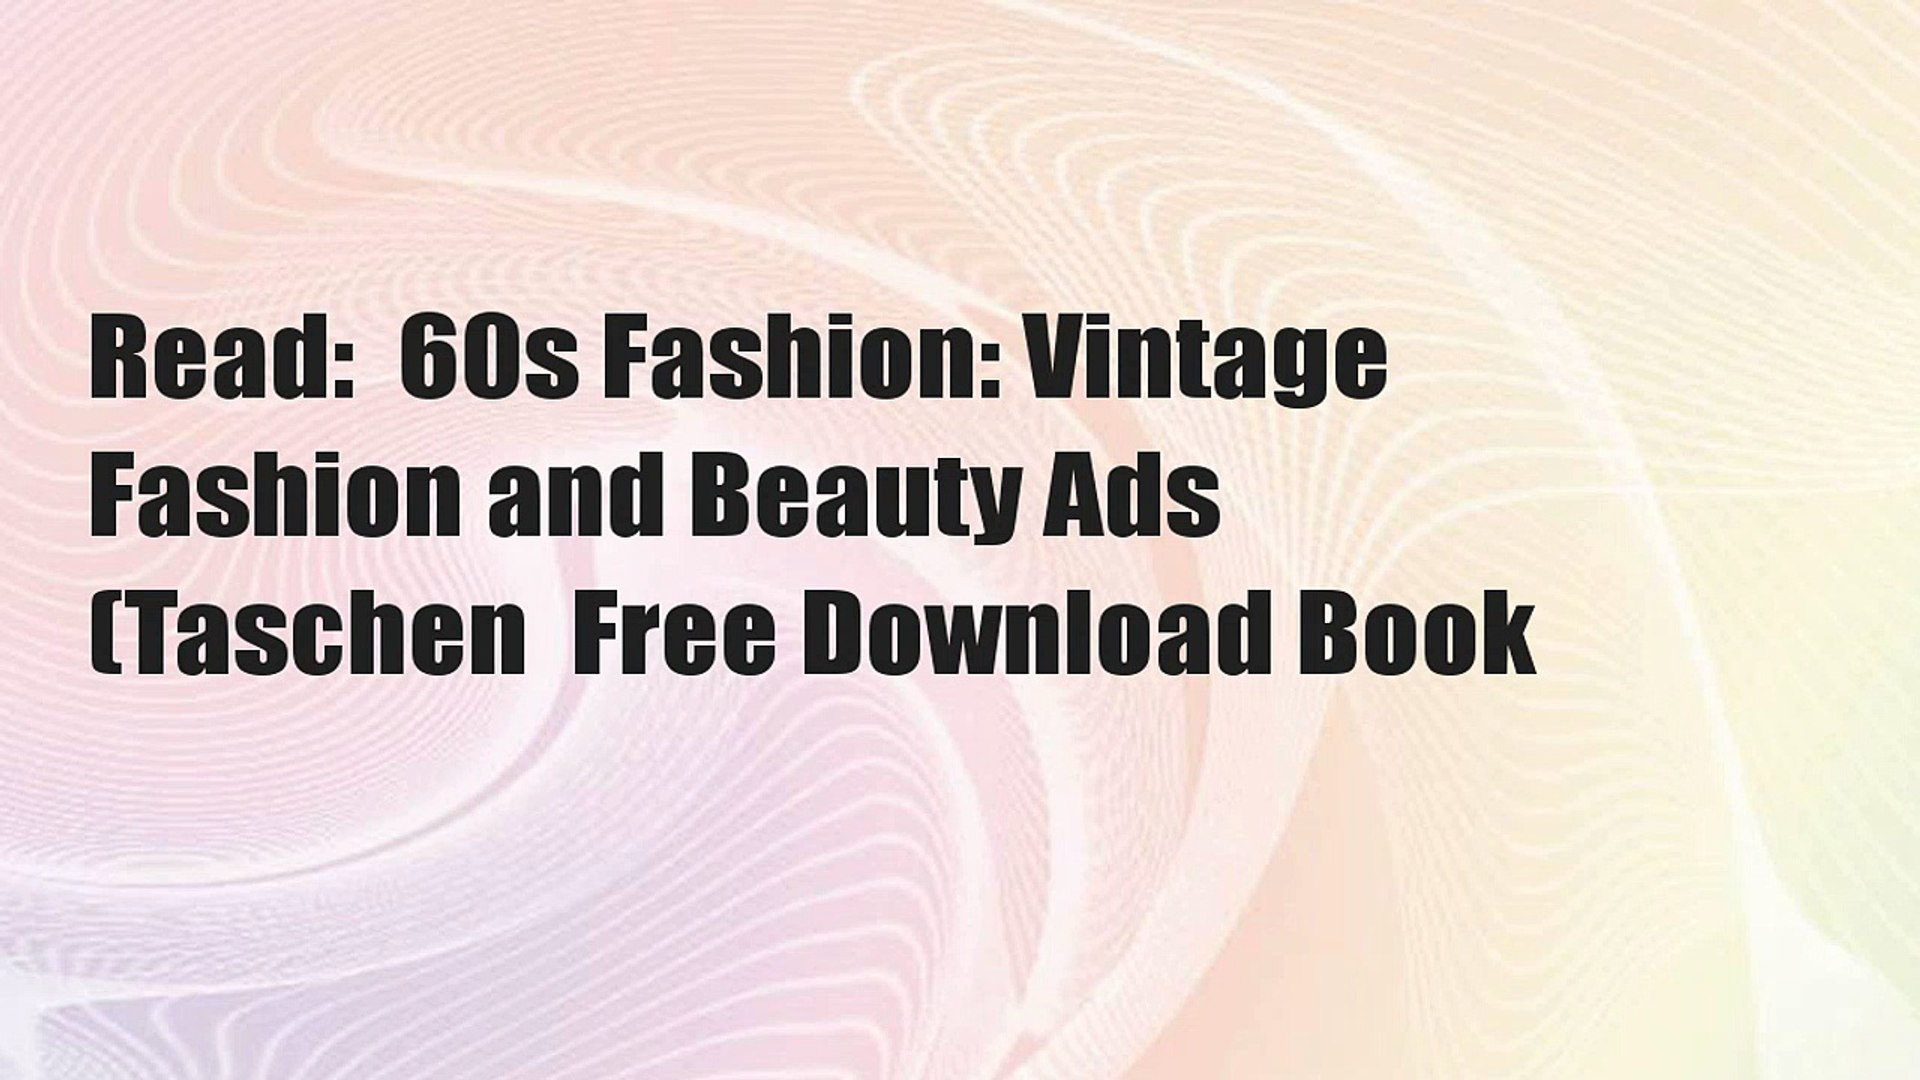 Read:  60s Fashion: Vintage Fashion and Beauty Ads (Taschen  Free Download Book